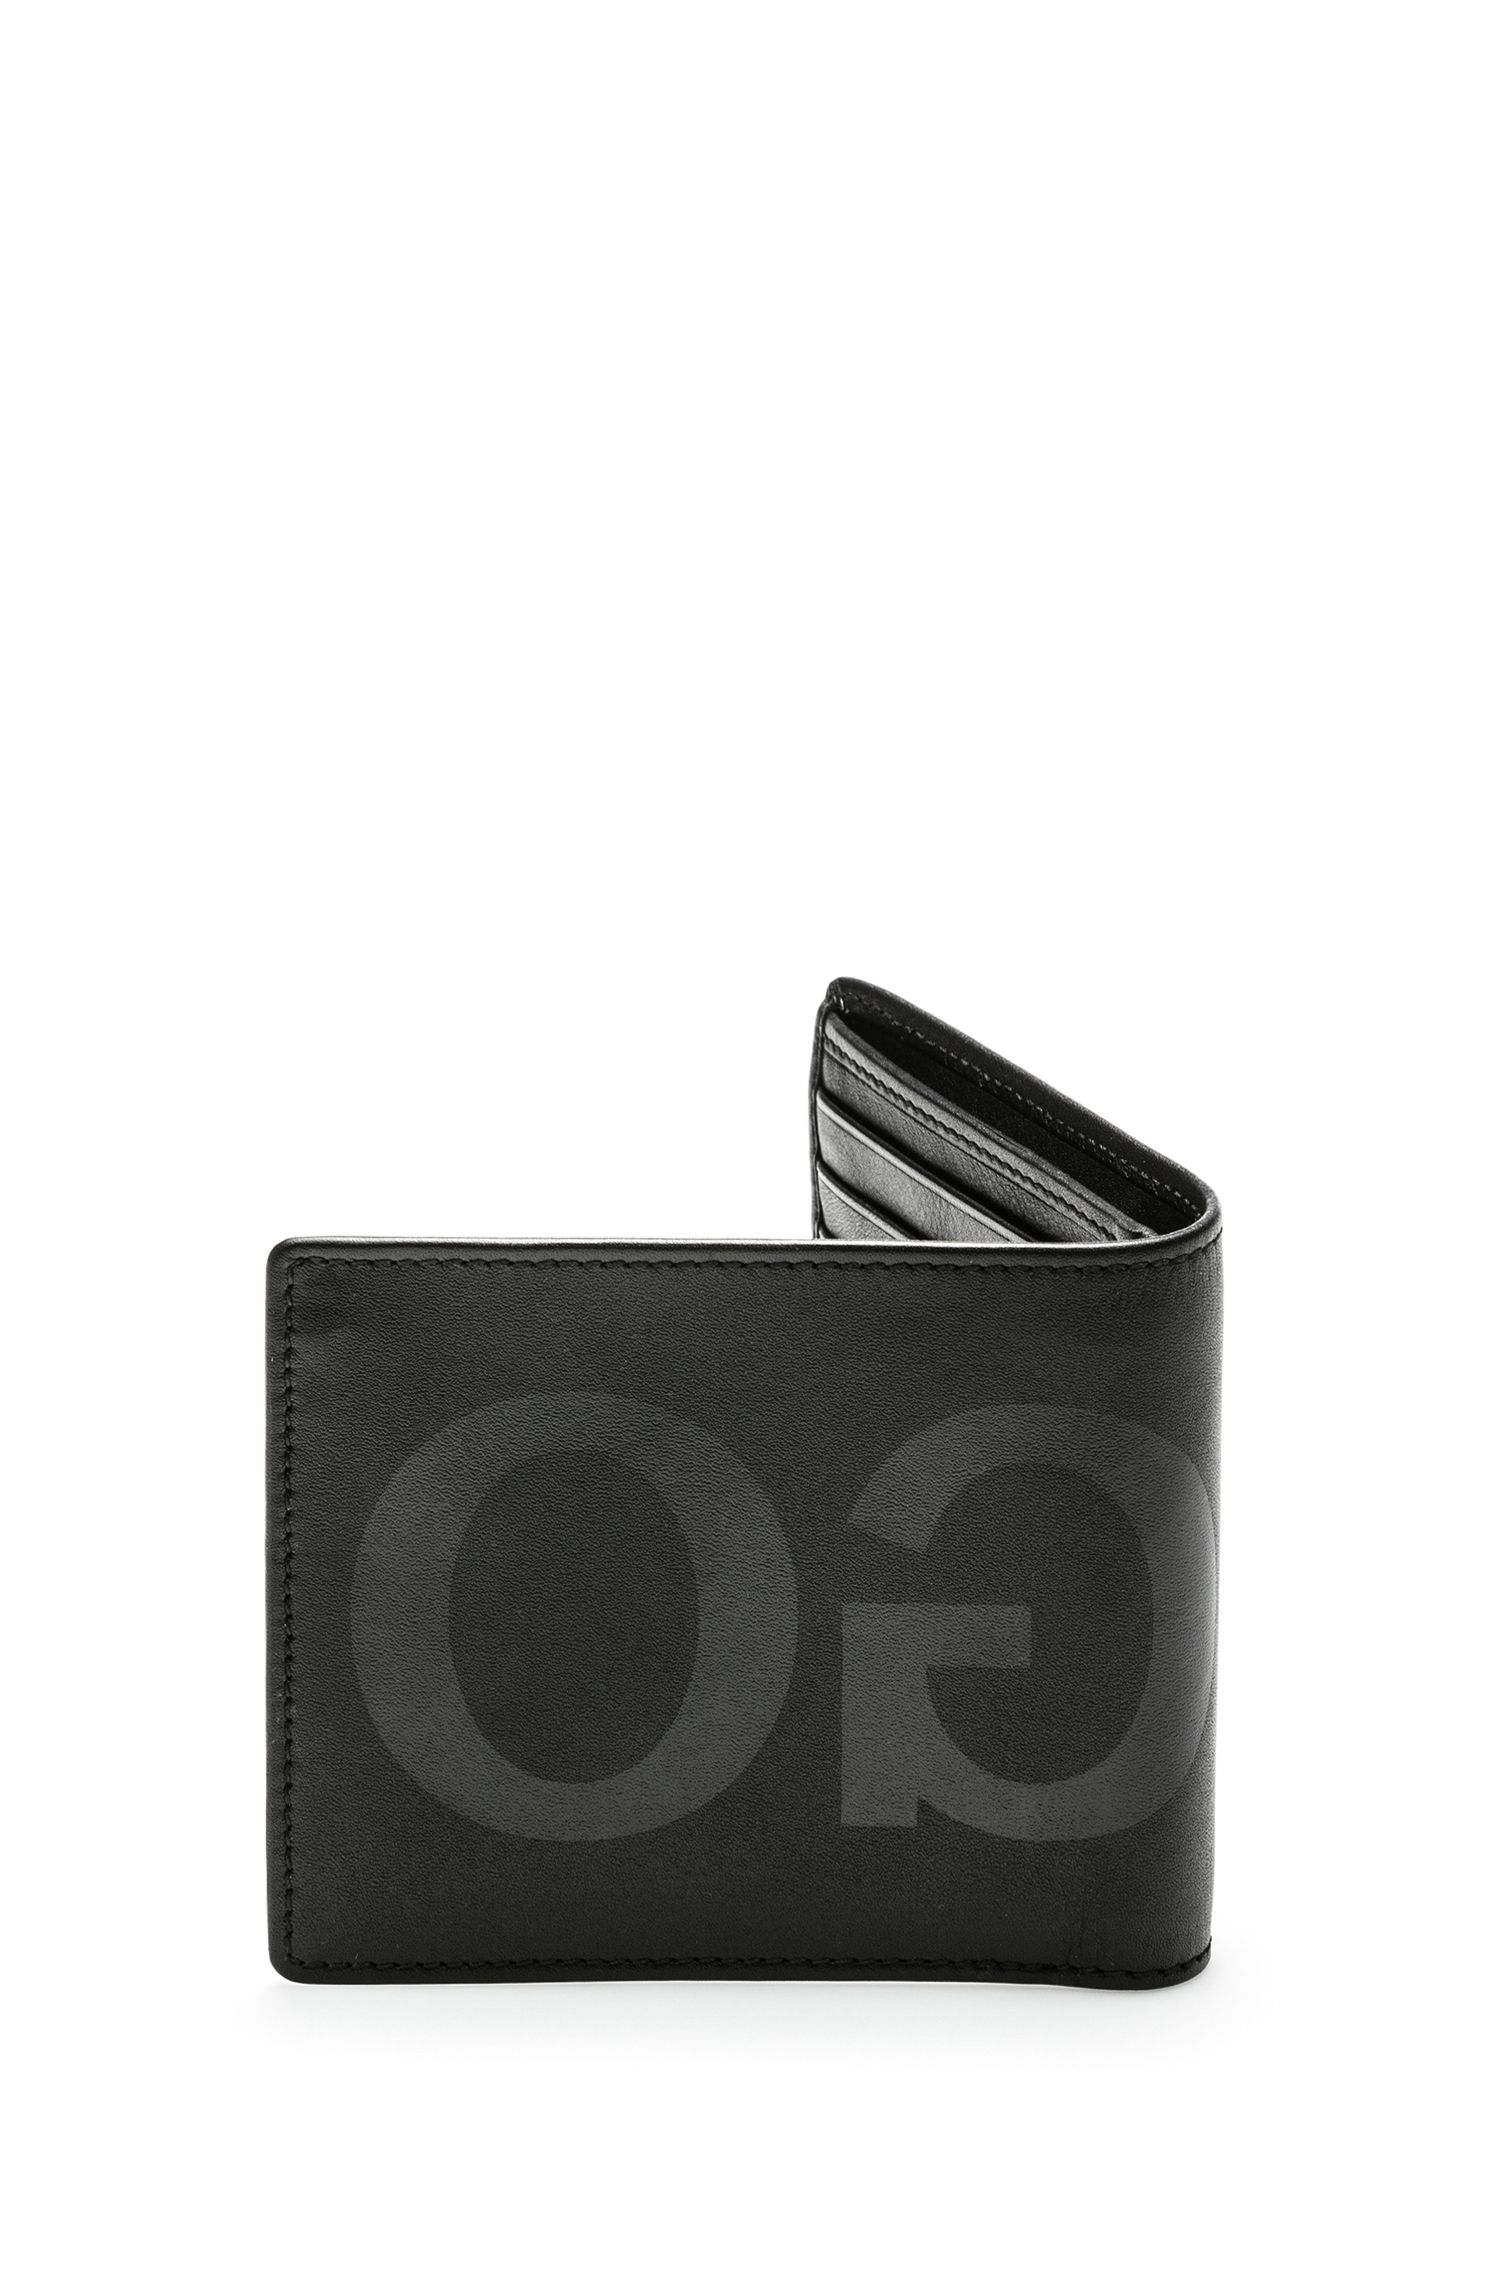 Eight-card leather billfold wallet with tonal reverse logo